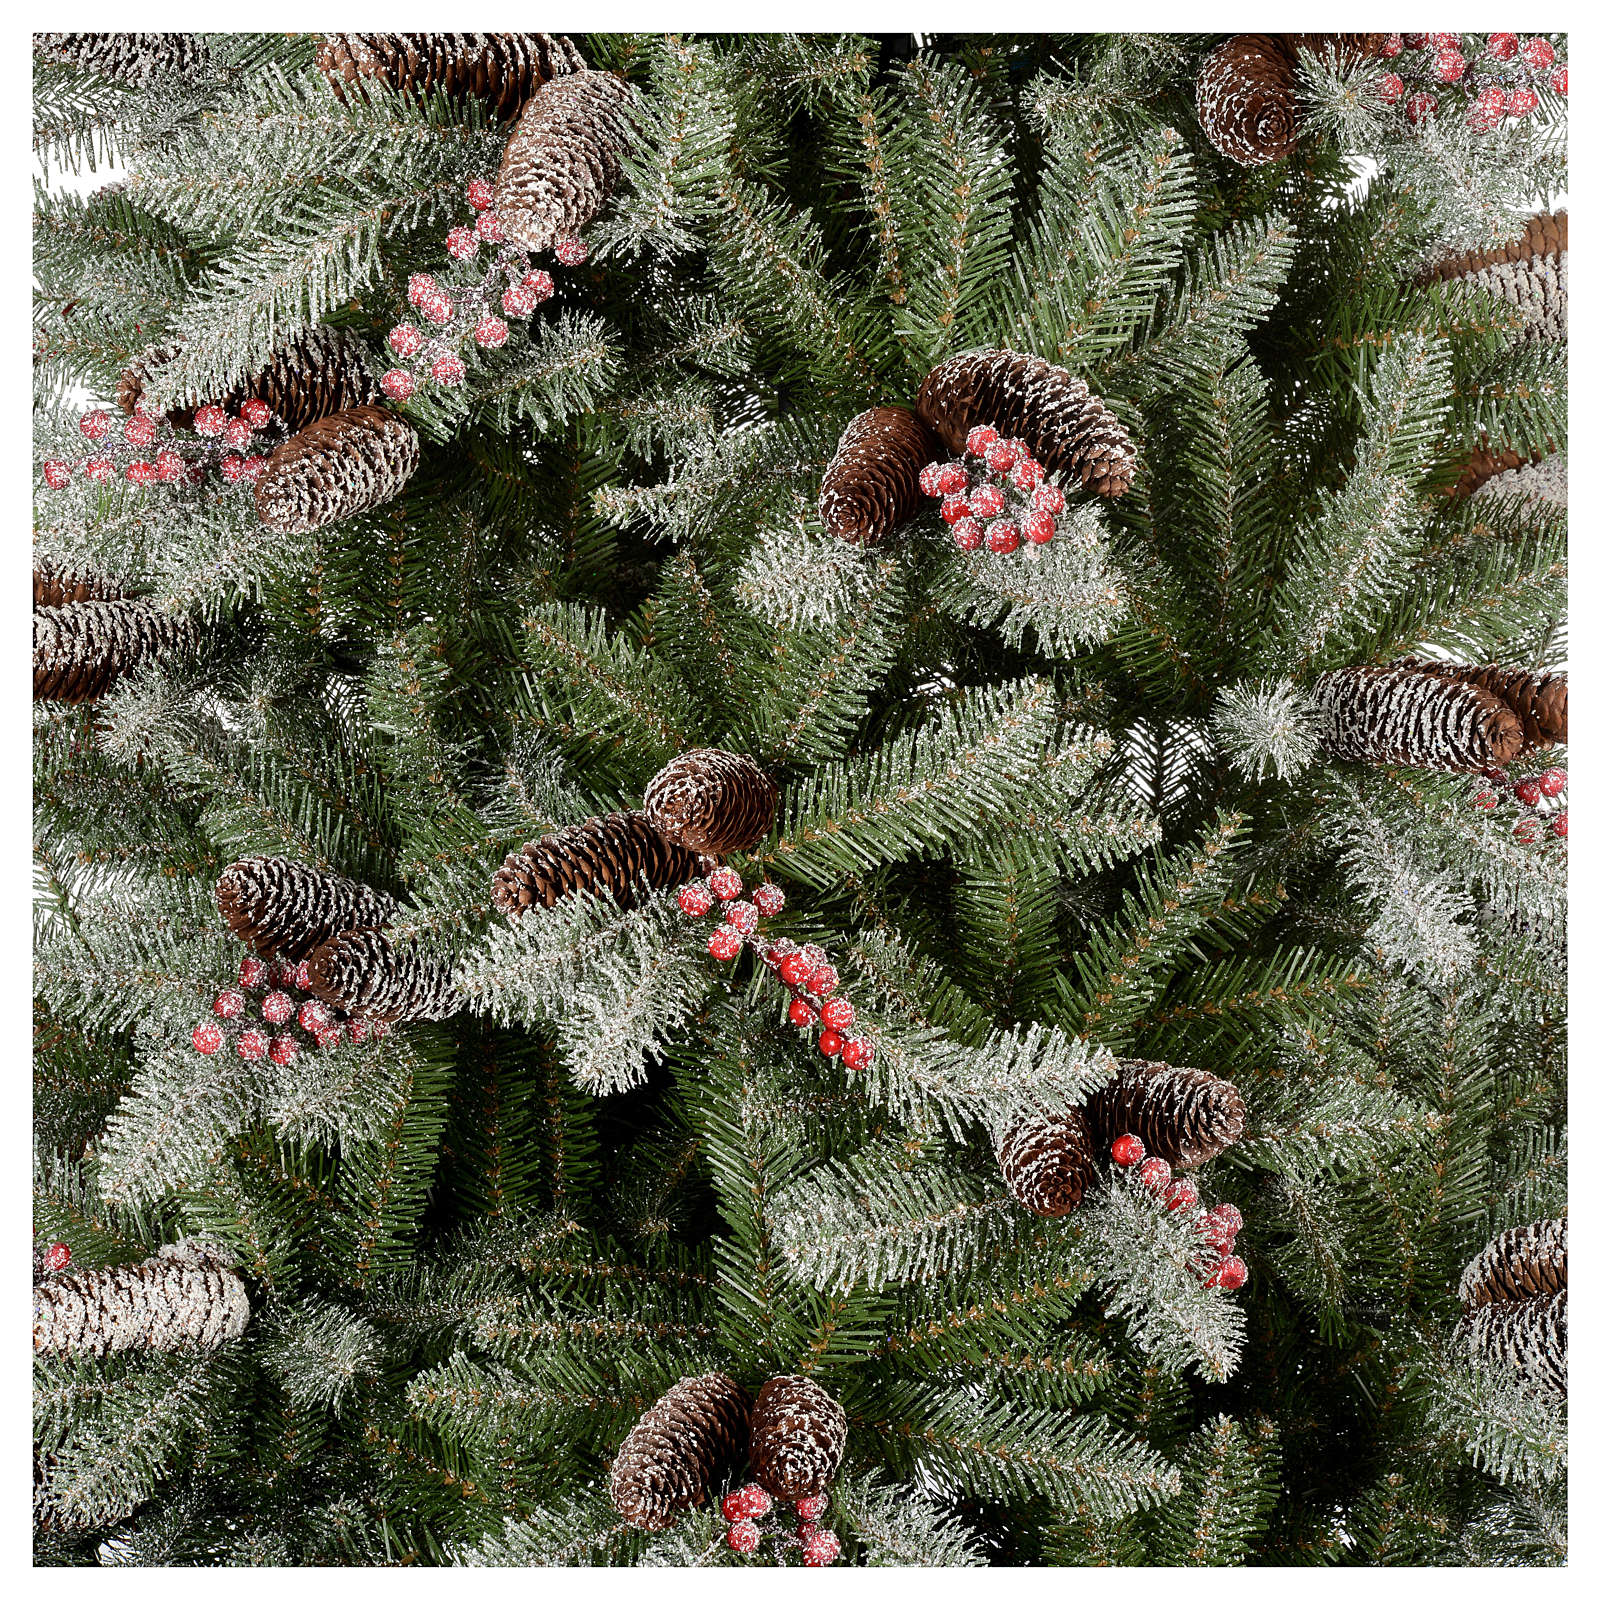 Slim Christmas tree 240 cm, flocked Dunhill with pine cones   online ...